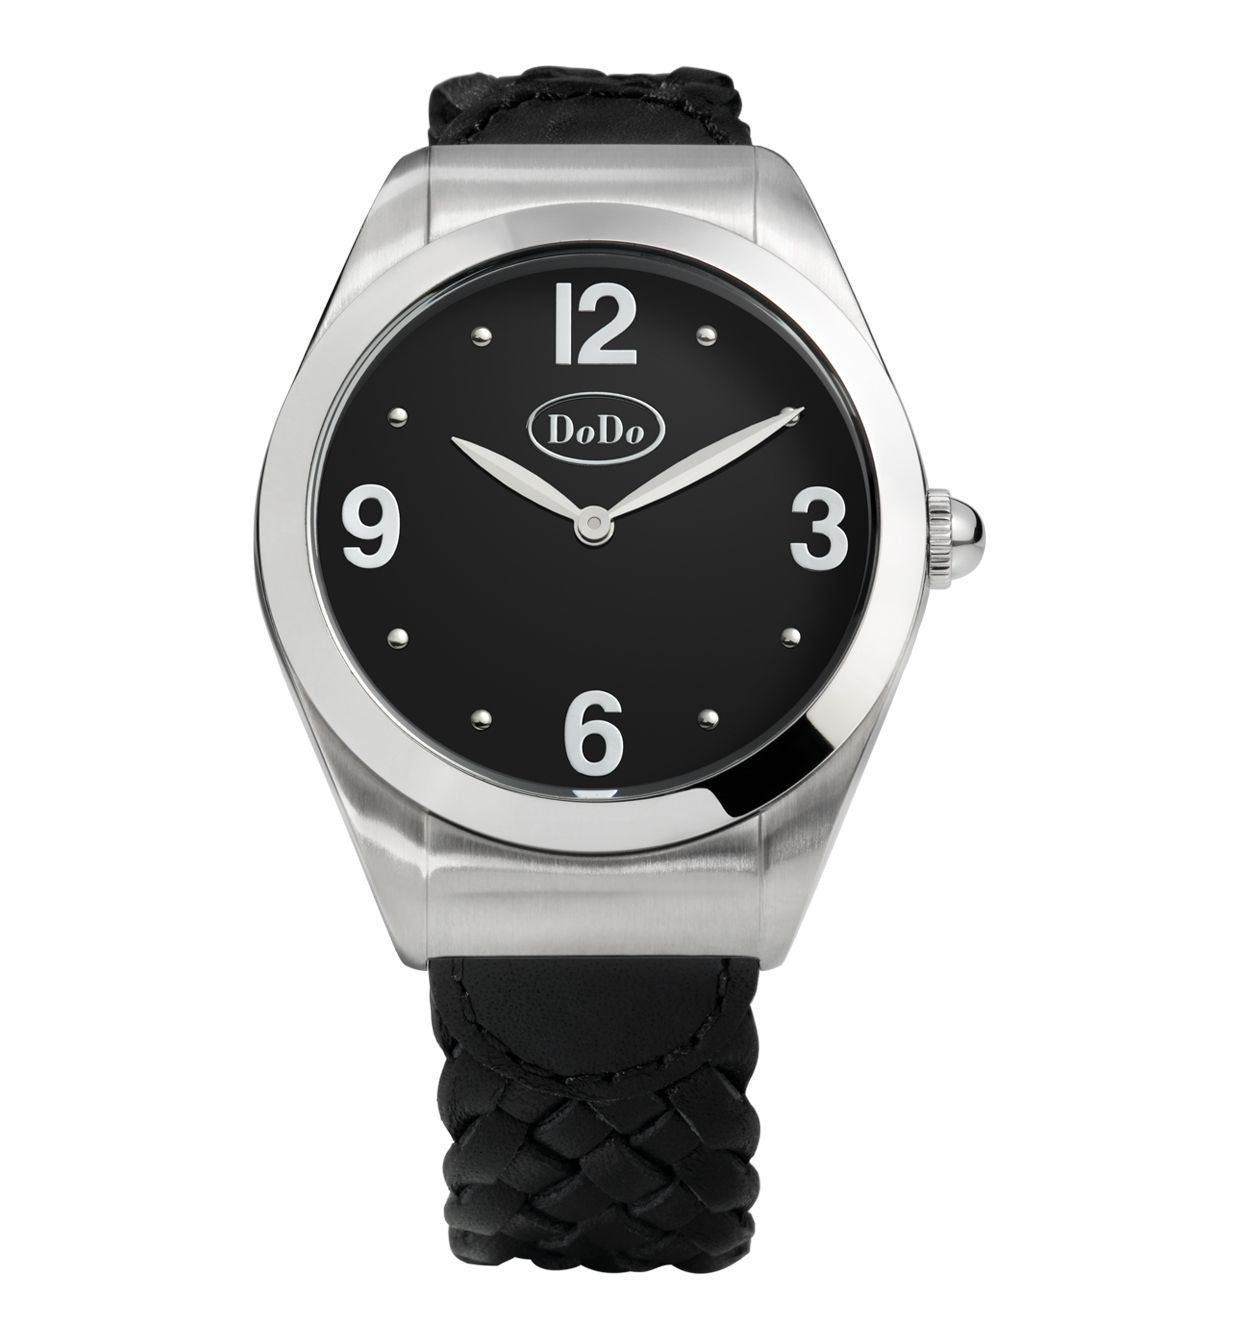 DoDo Black & Steel Watch - Orsini Jewellers NZ